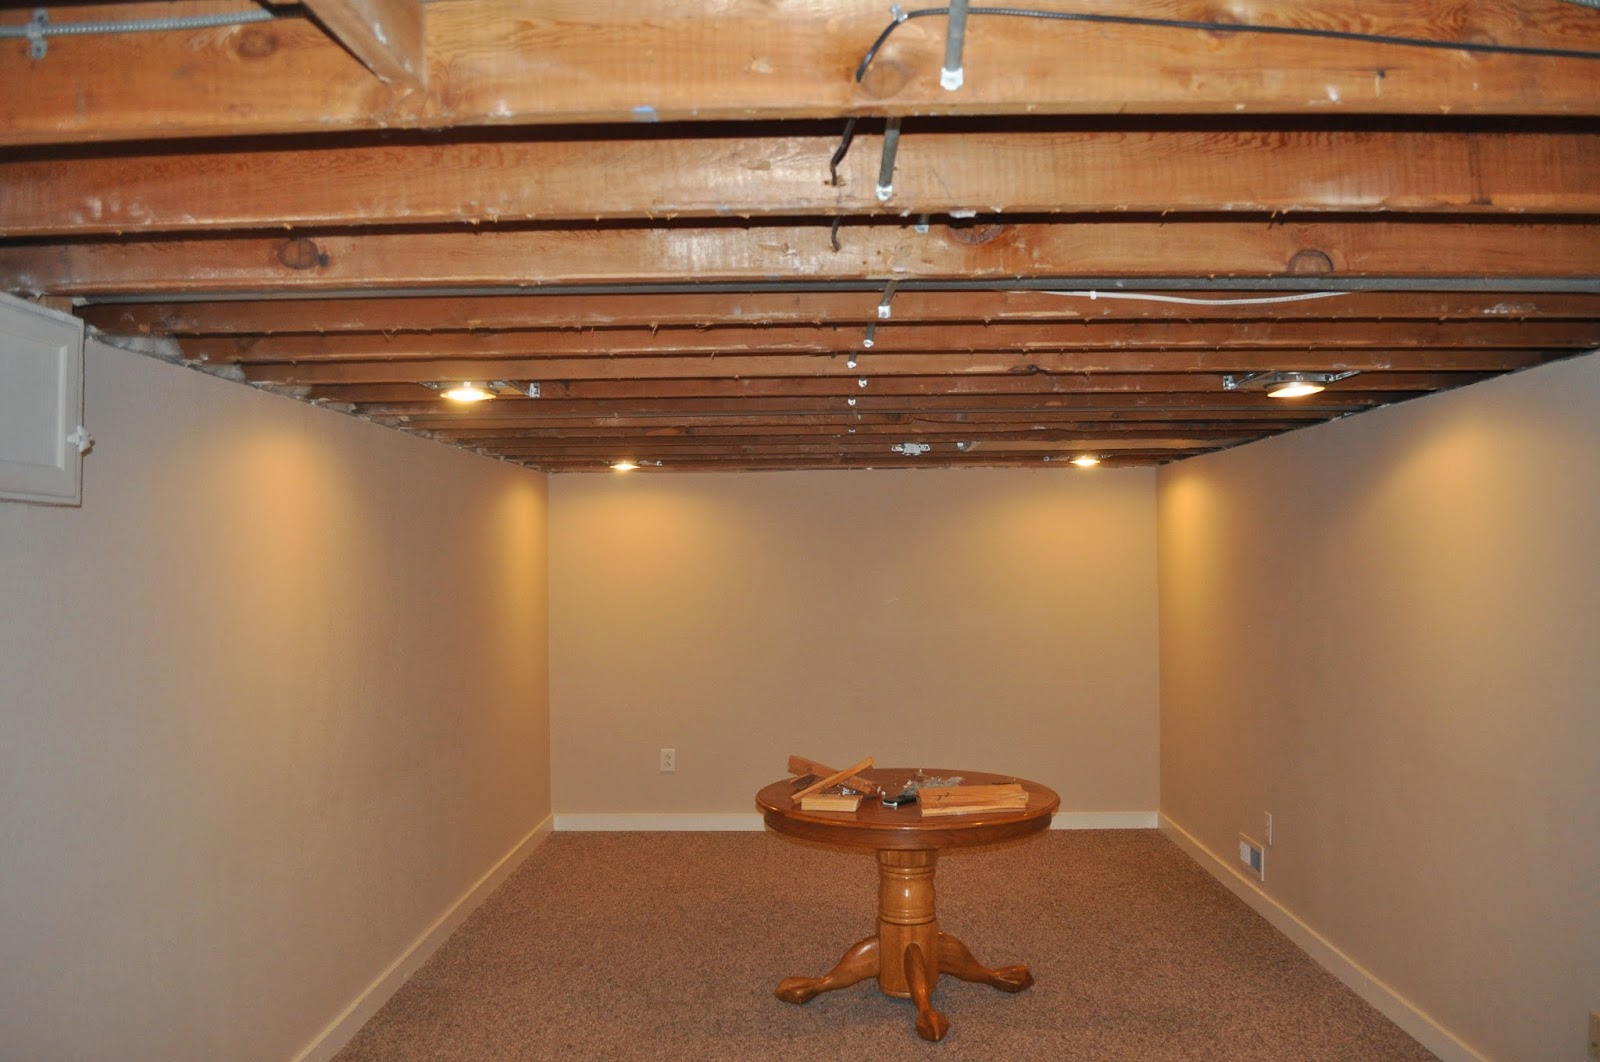 Carri Us Home: Painting a Basement Ceiling